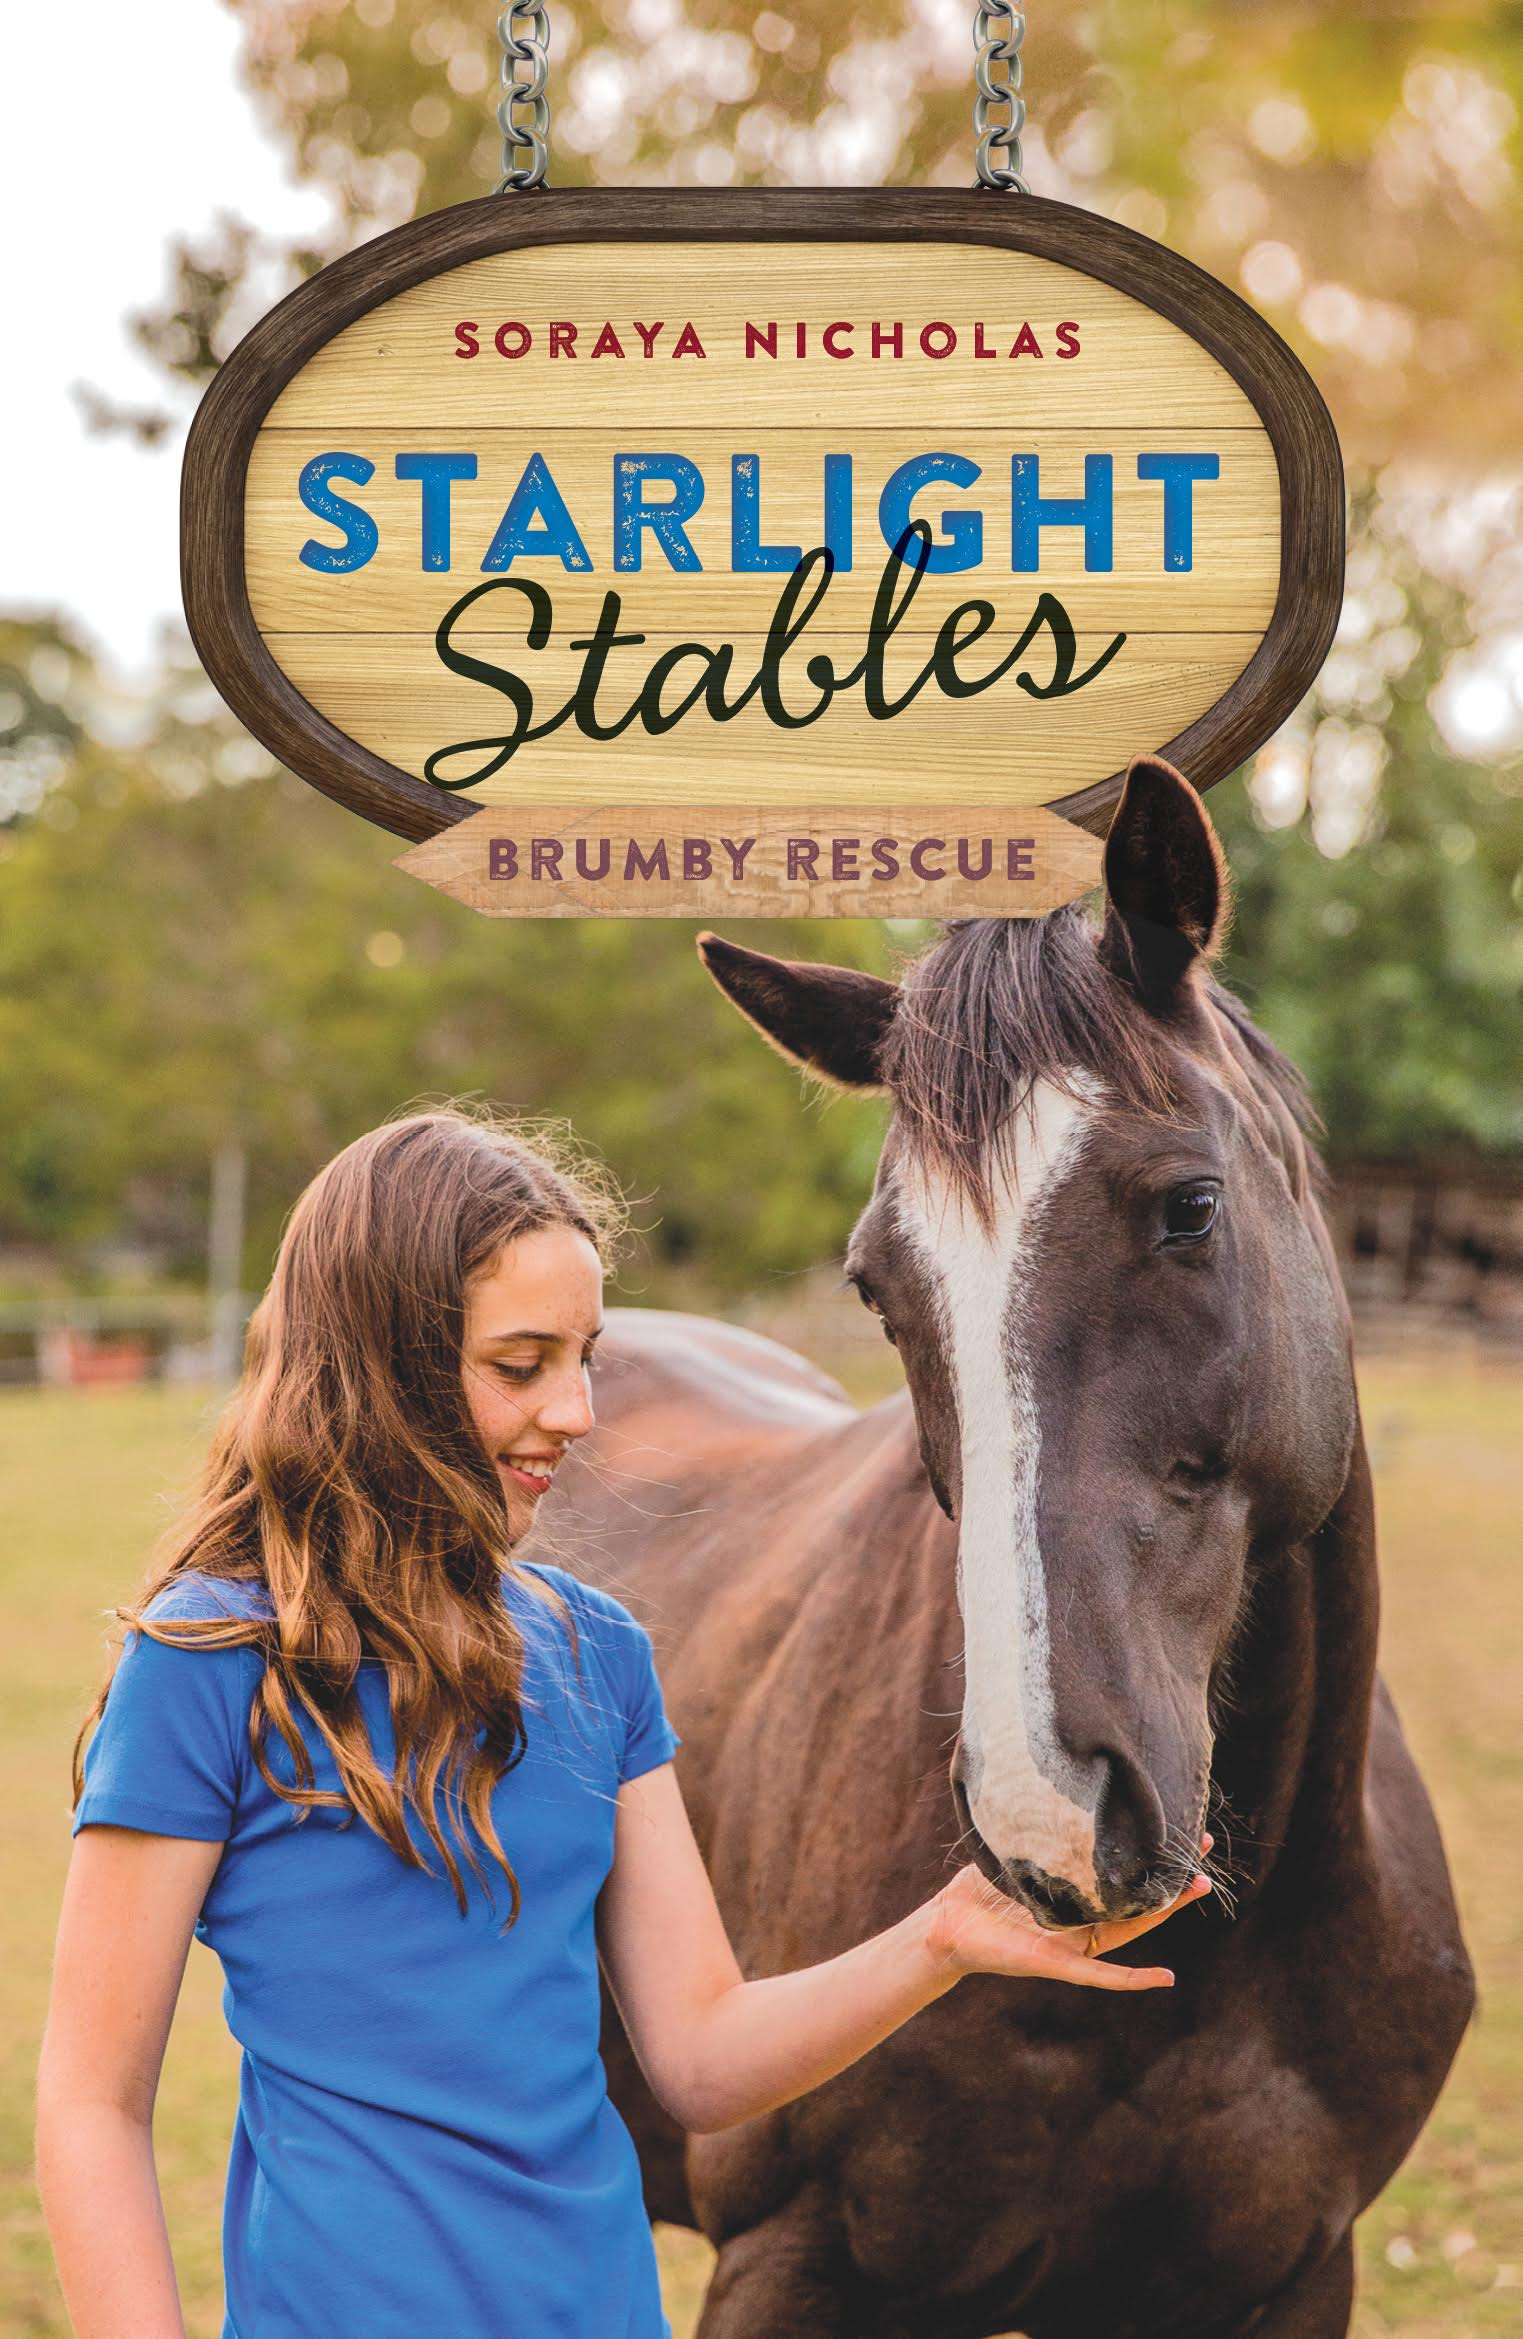 Starlight Stables: Brumby Rescue by Soraya Nicholas